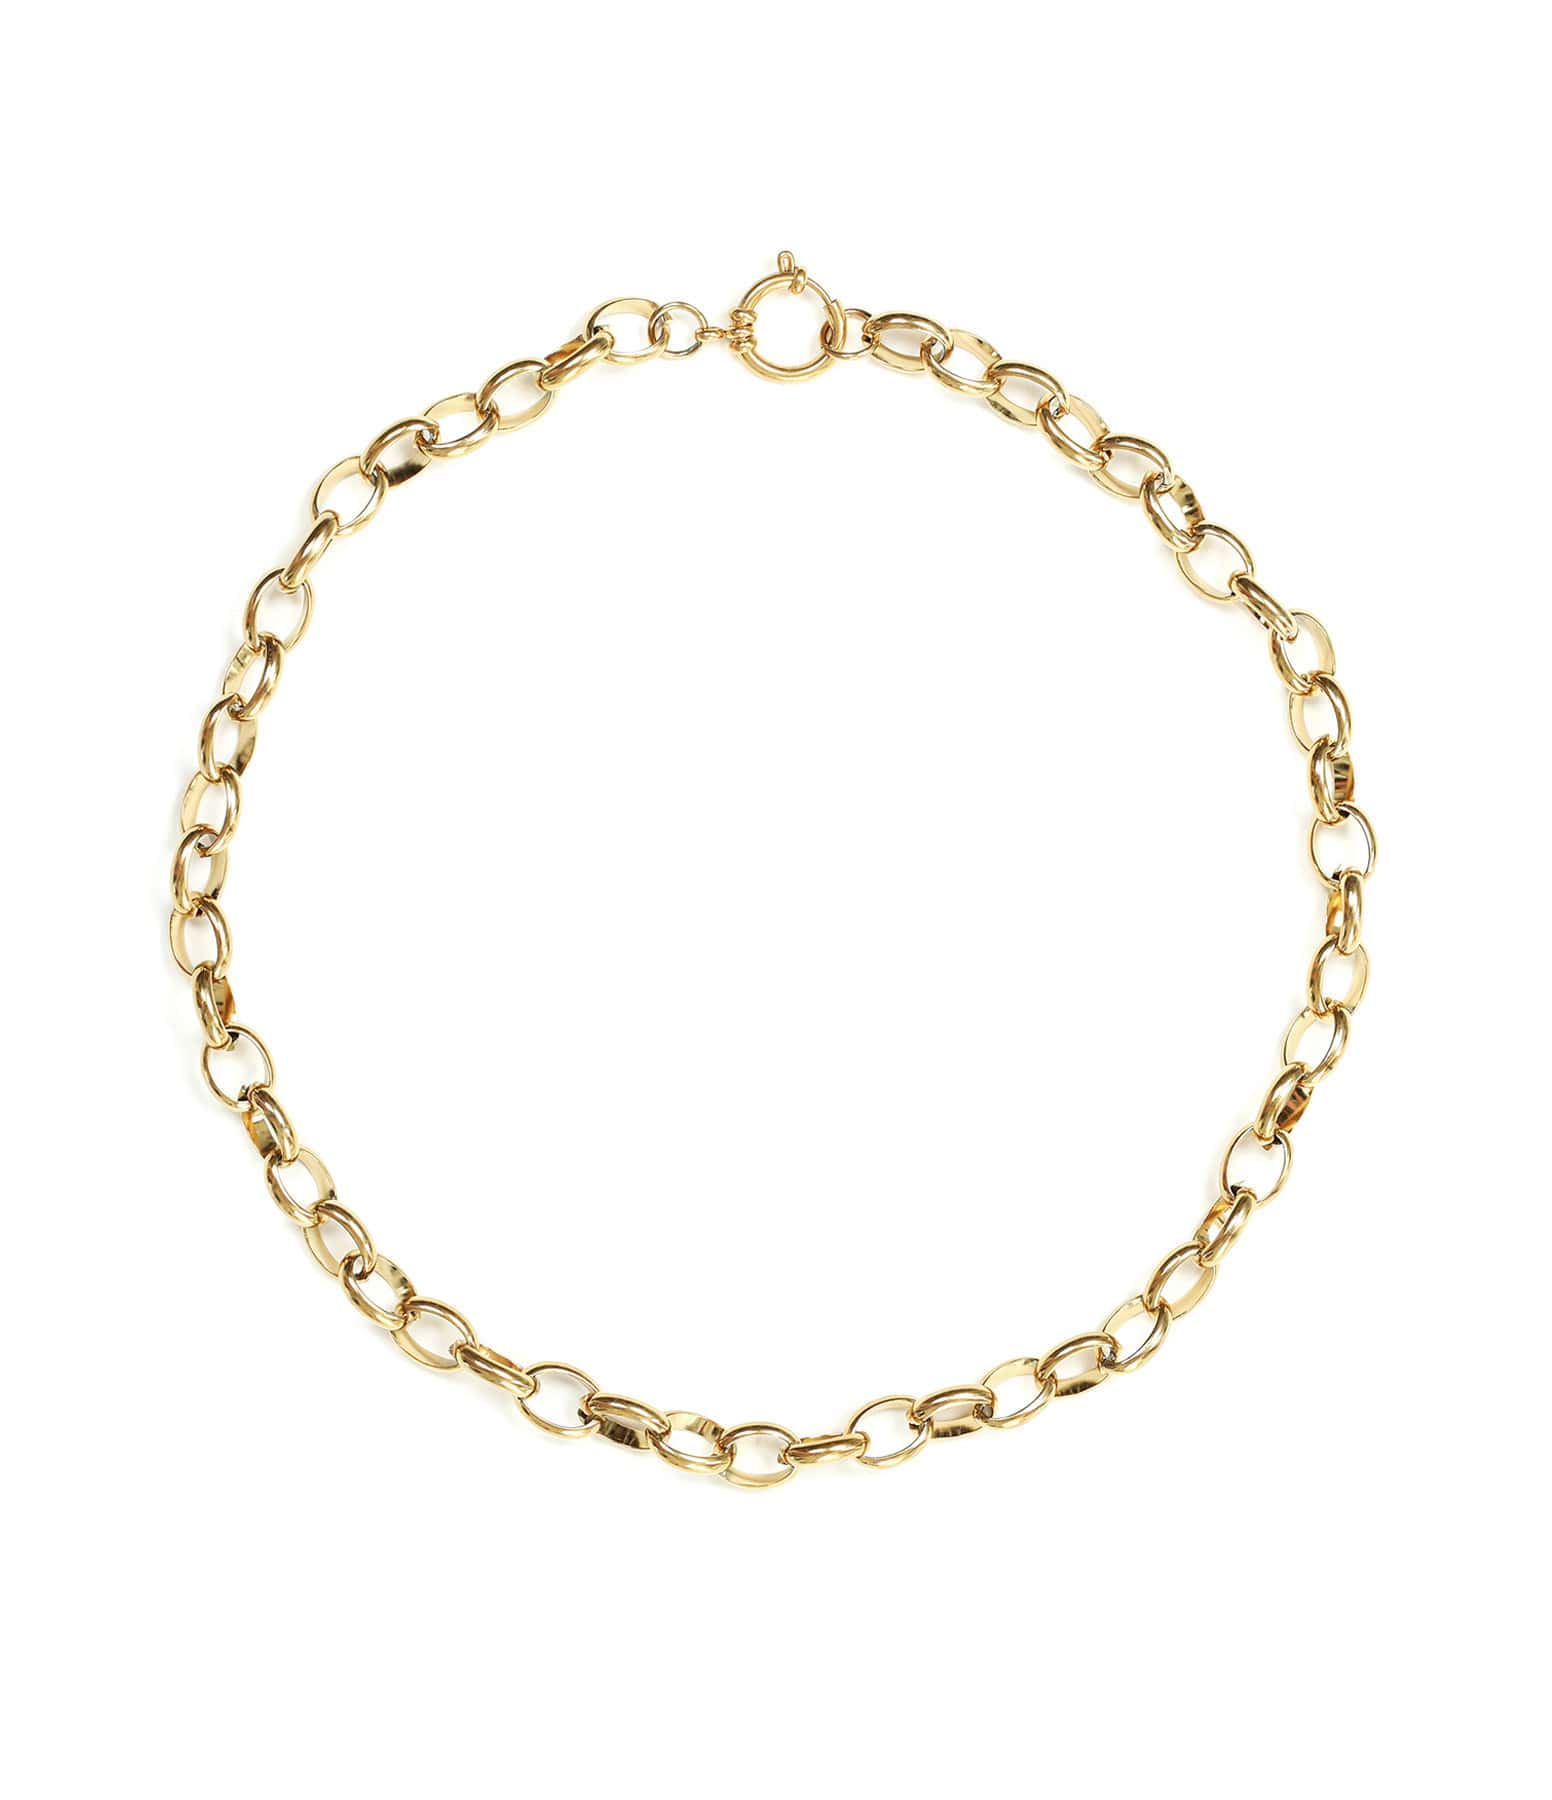 SHAKER JEWELS - Collier Lune Plaqué Or